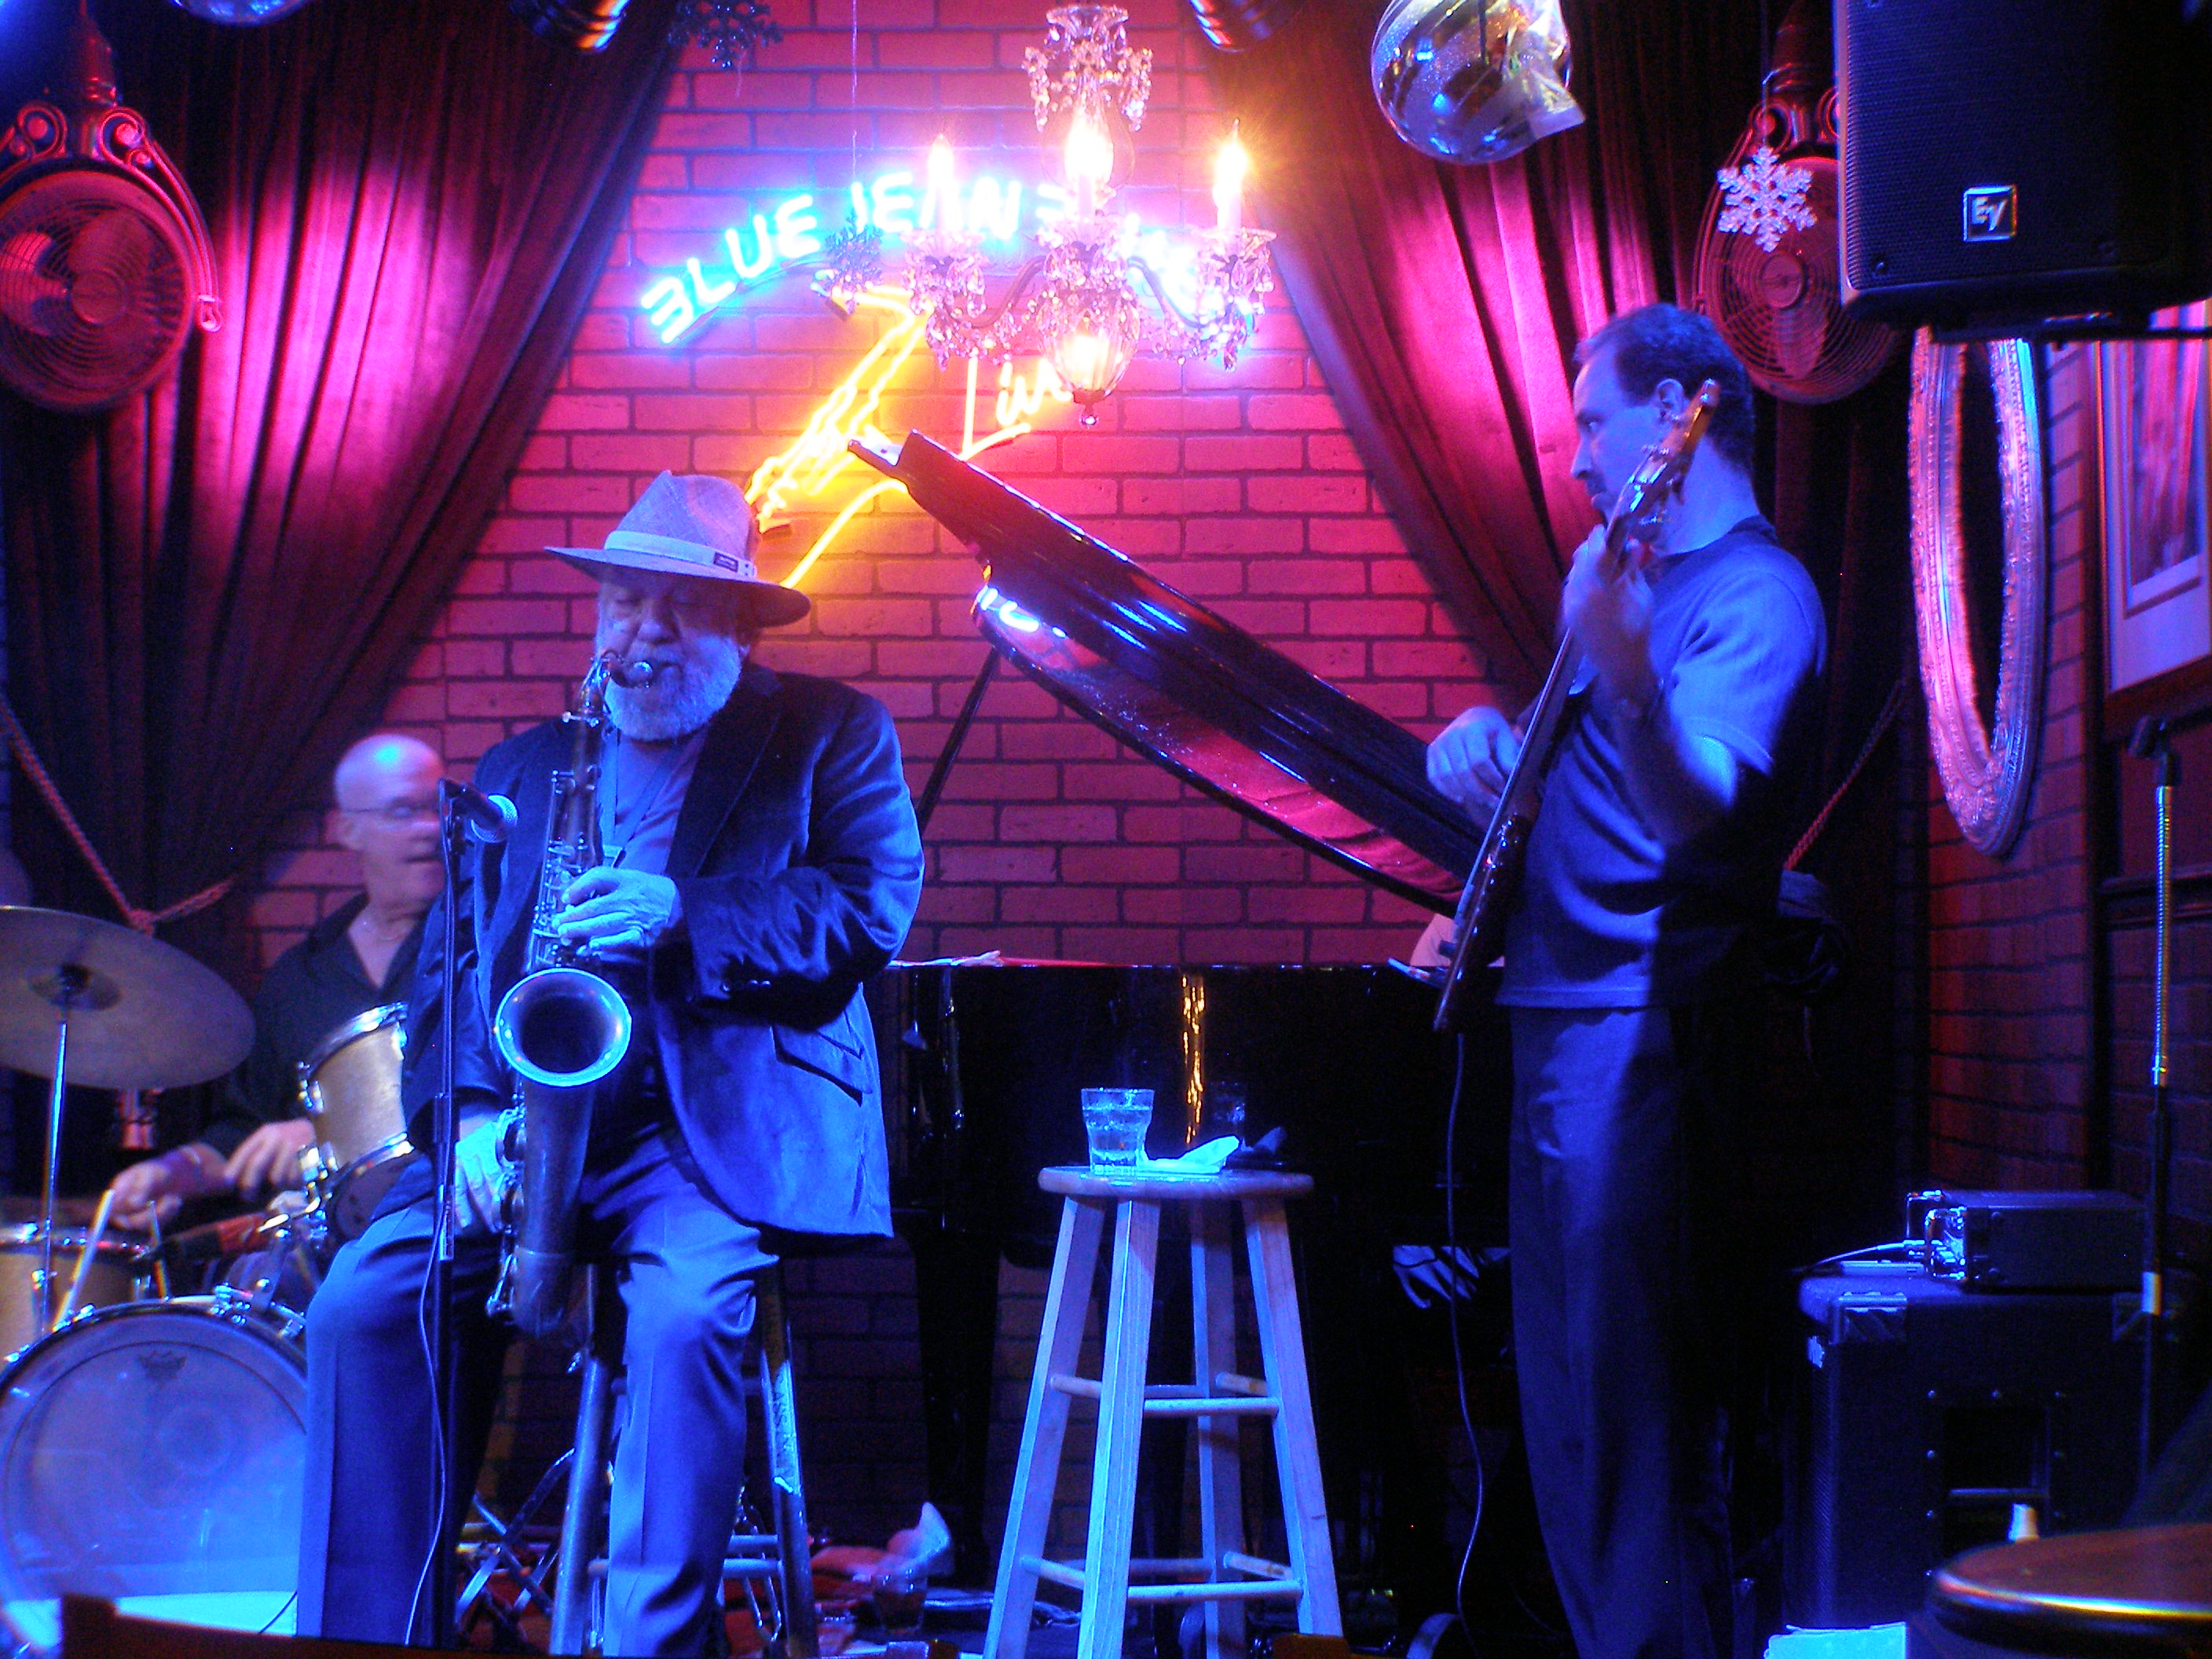 blues jazz music entertainment vice bands night june florida